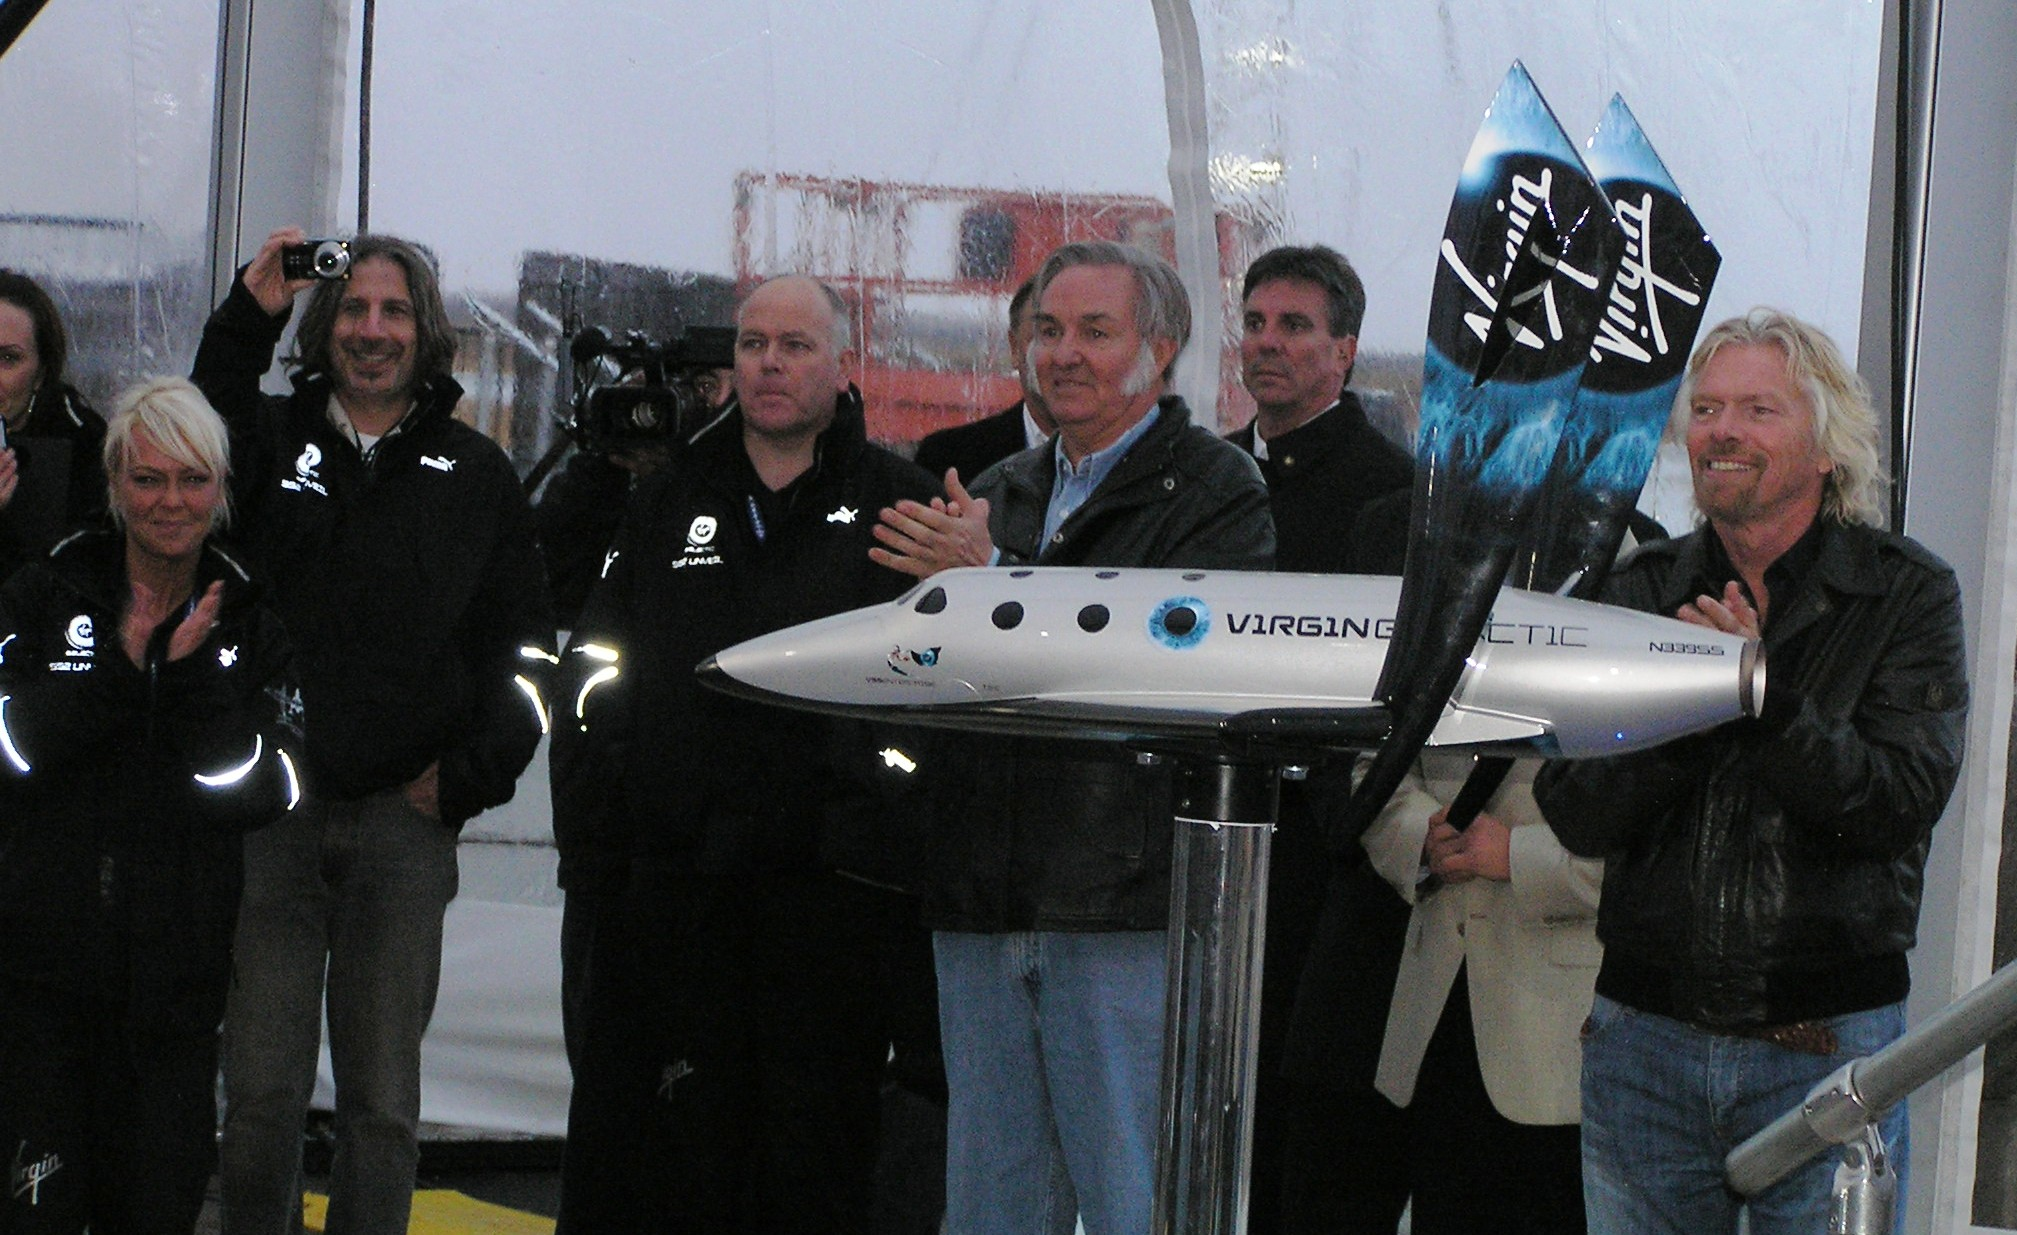 At the press conference, Sir Richard Branson and Burt Rutan stand behind the SpaceShipTwo model. The designs for both SpaceShipTwo and WhiteKnightTwo were previously unveiled in January 2008.